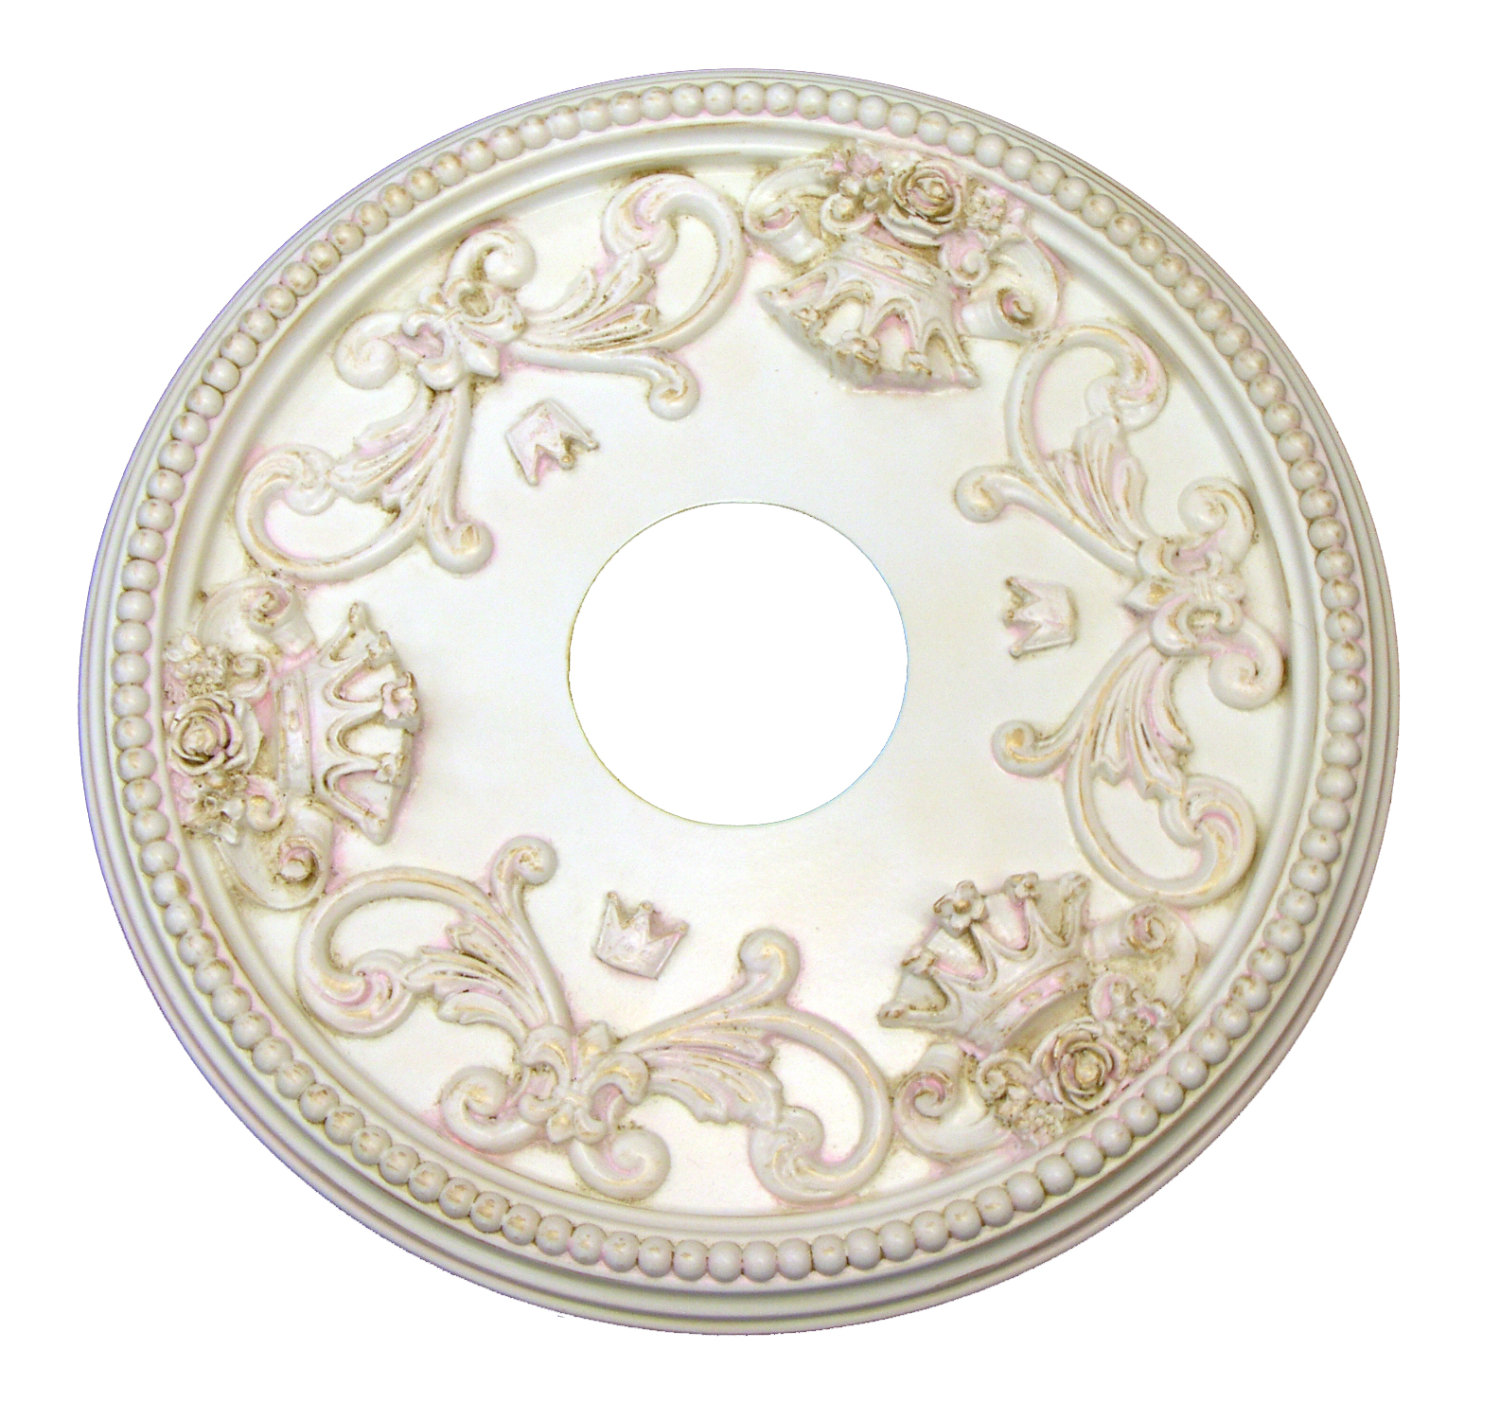 Shabby Rose And Crown Ceiling Medallion In Custom Cream Pink Gold By I Lite 4 U